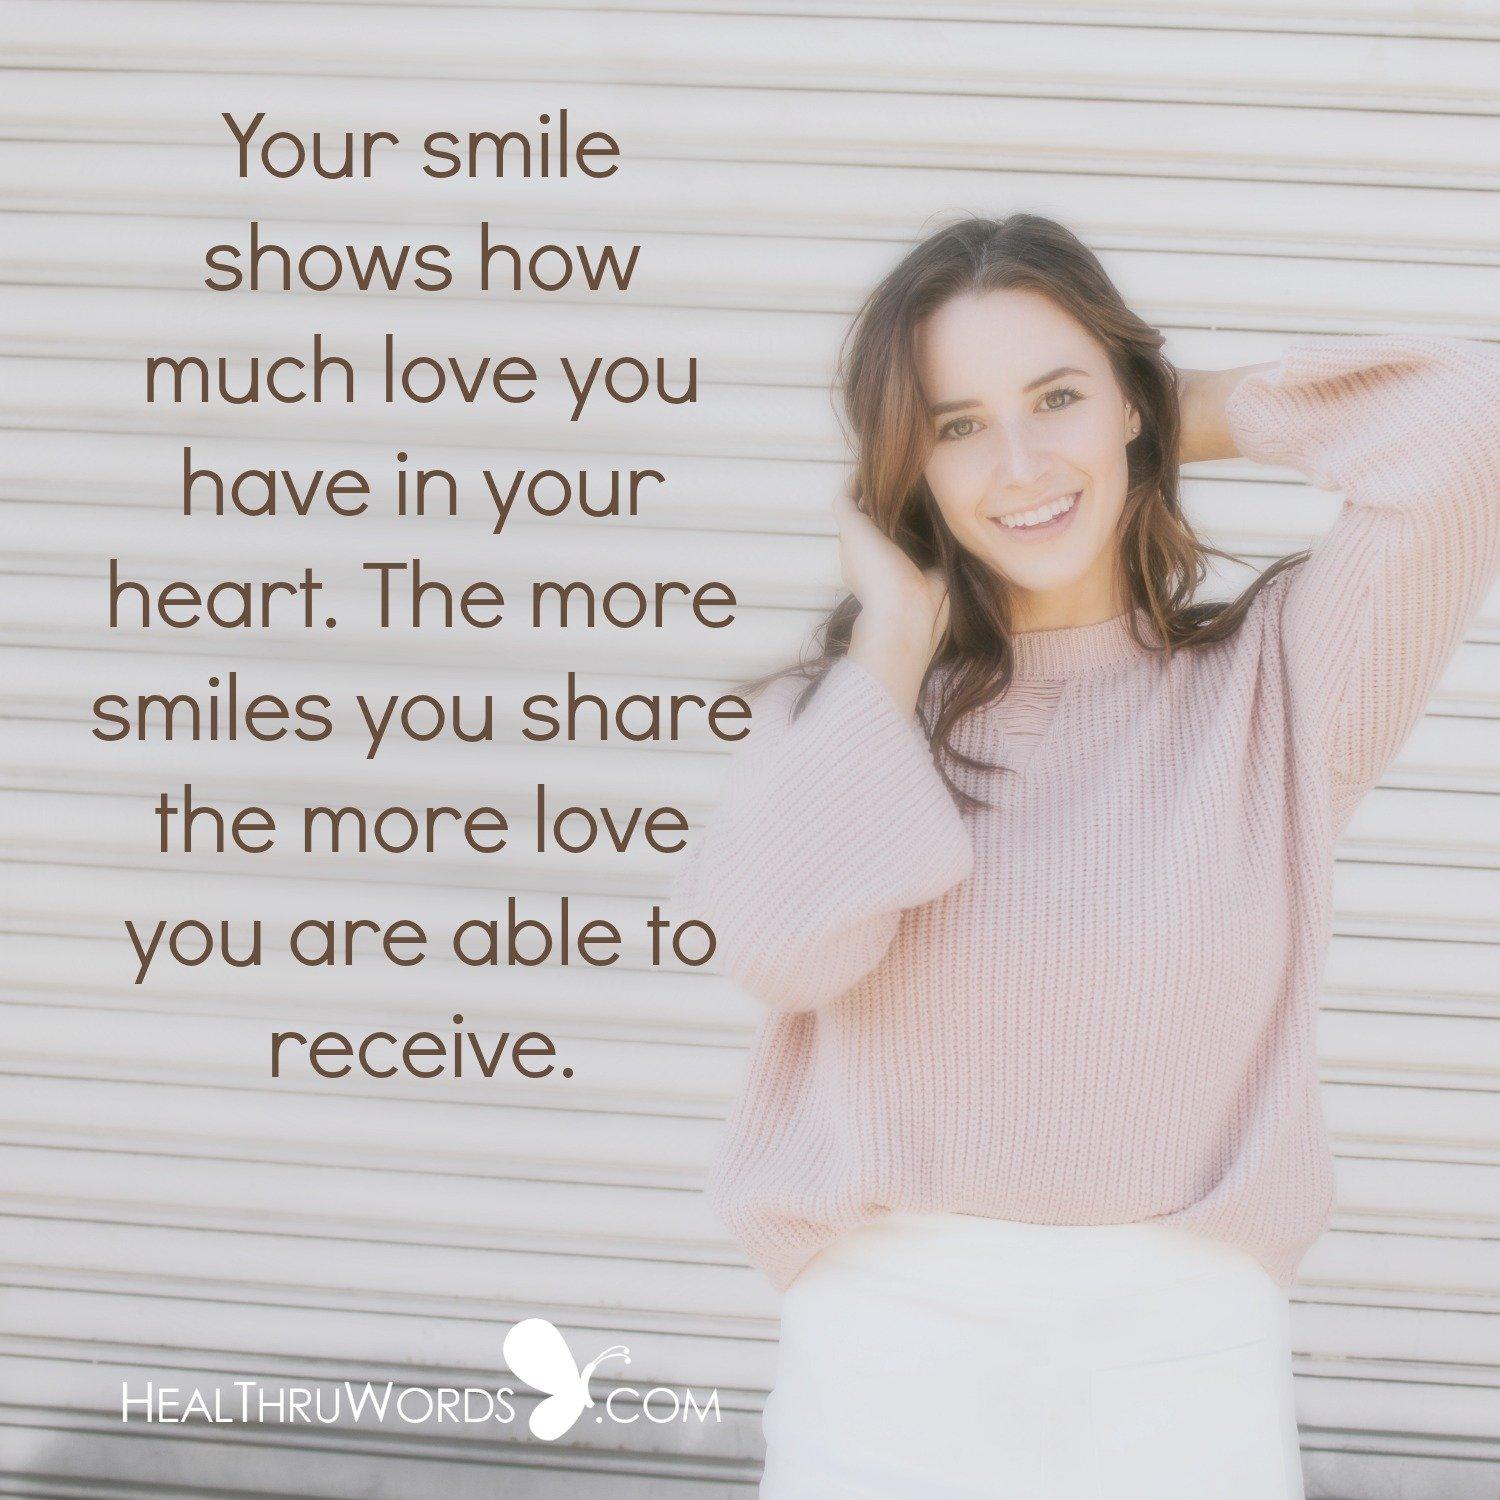 Inspirational Image: How Much Do You Smile?